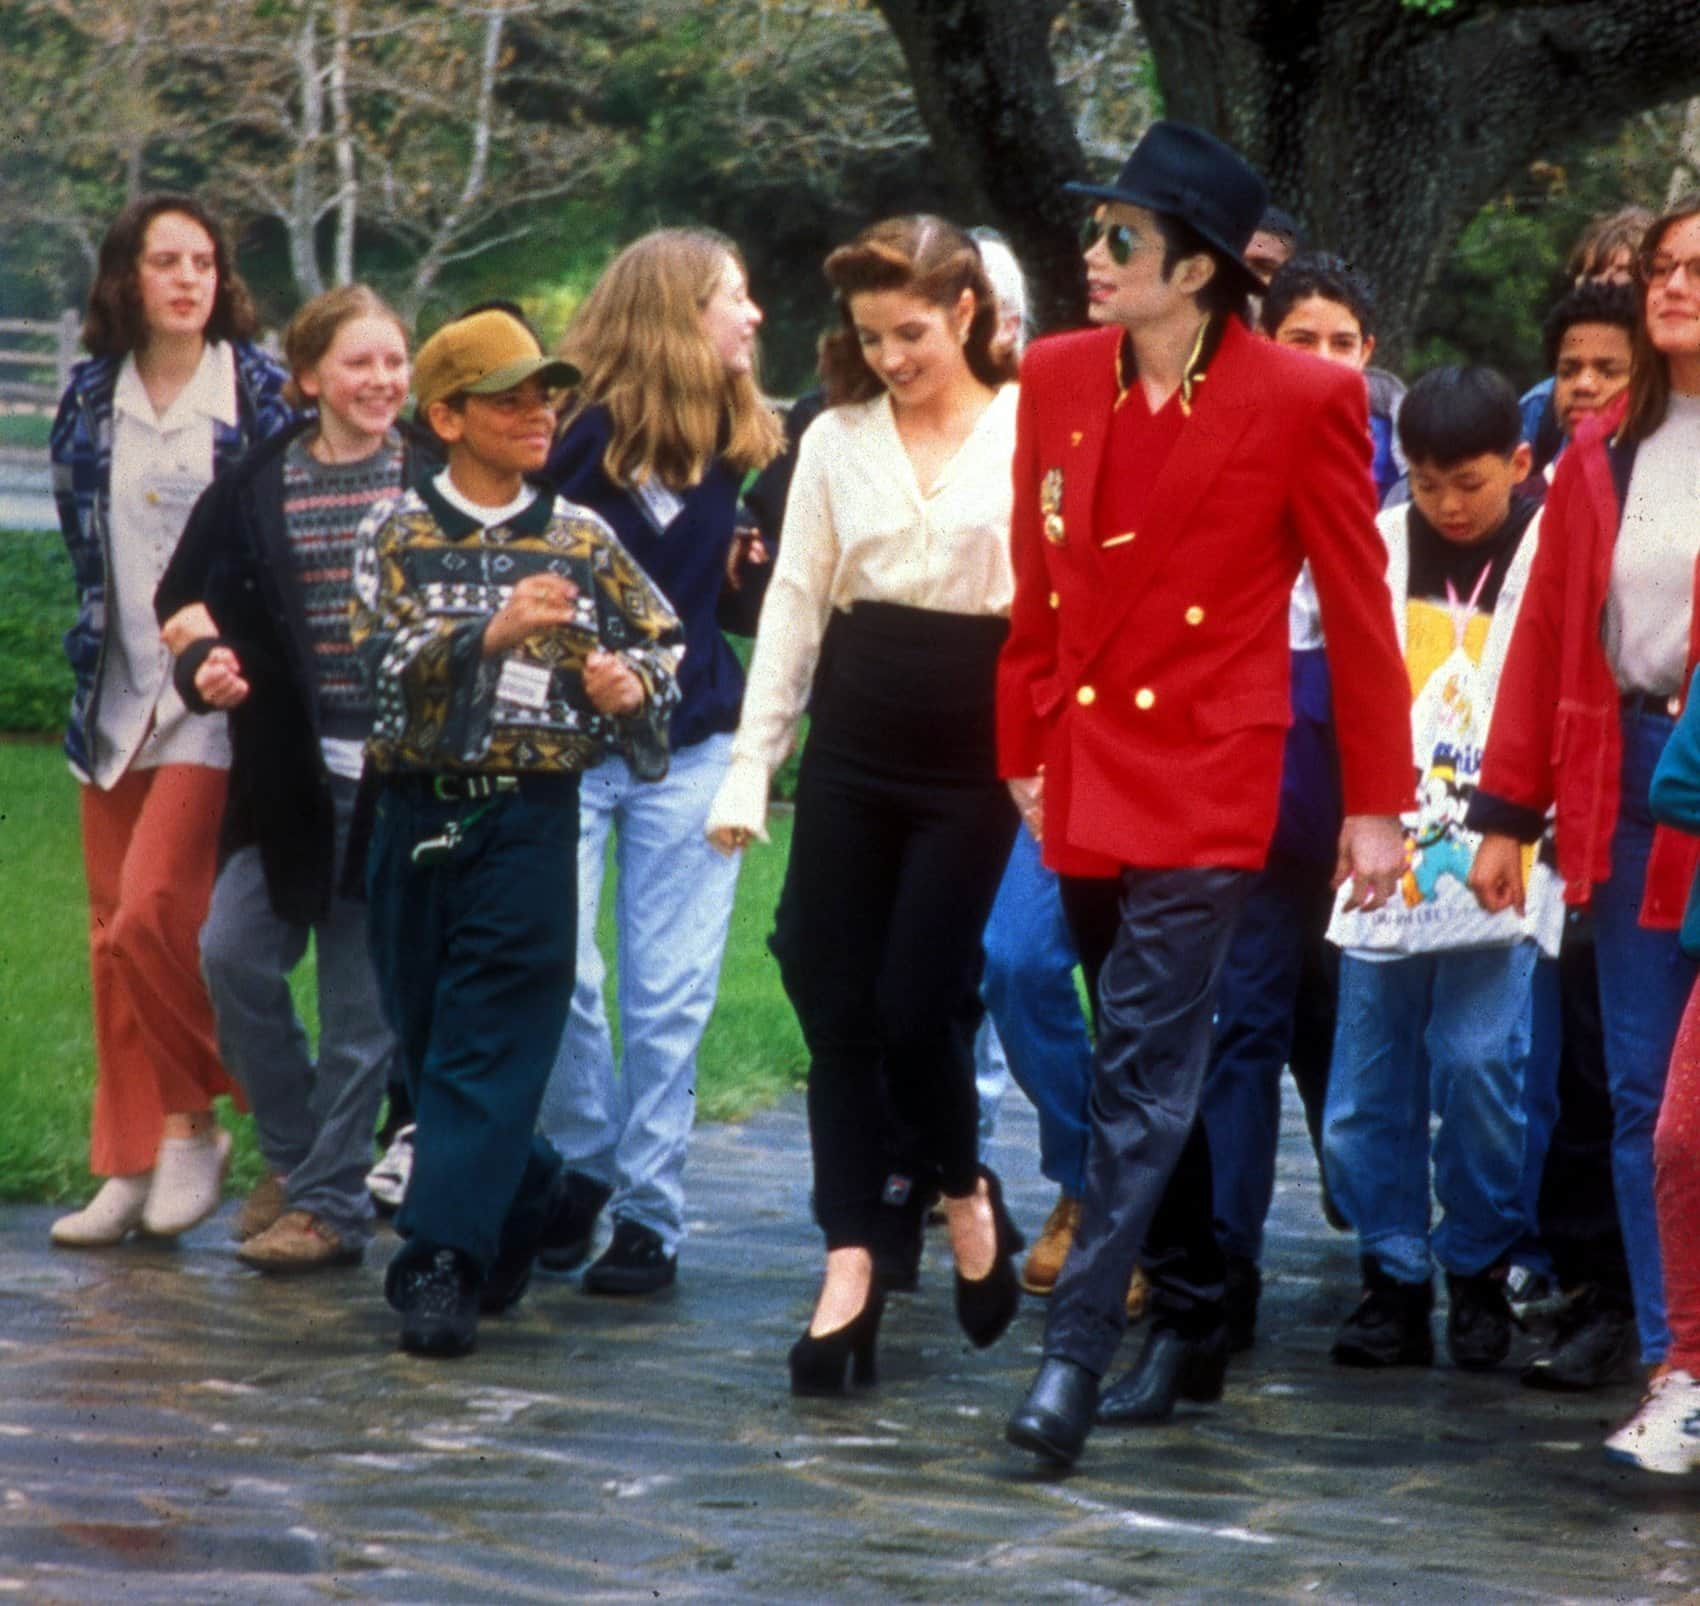 Lisa Marie Presley and Michael Jackson at Neverland Ranch during a VIP visit by a group of children